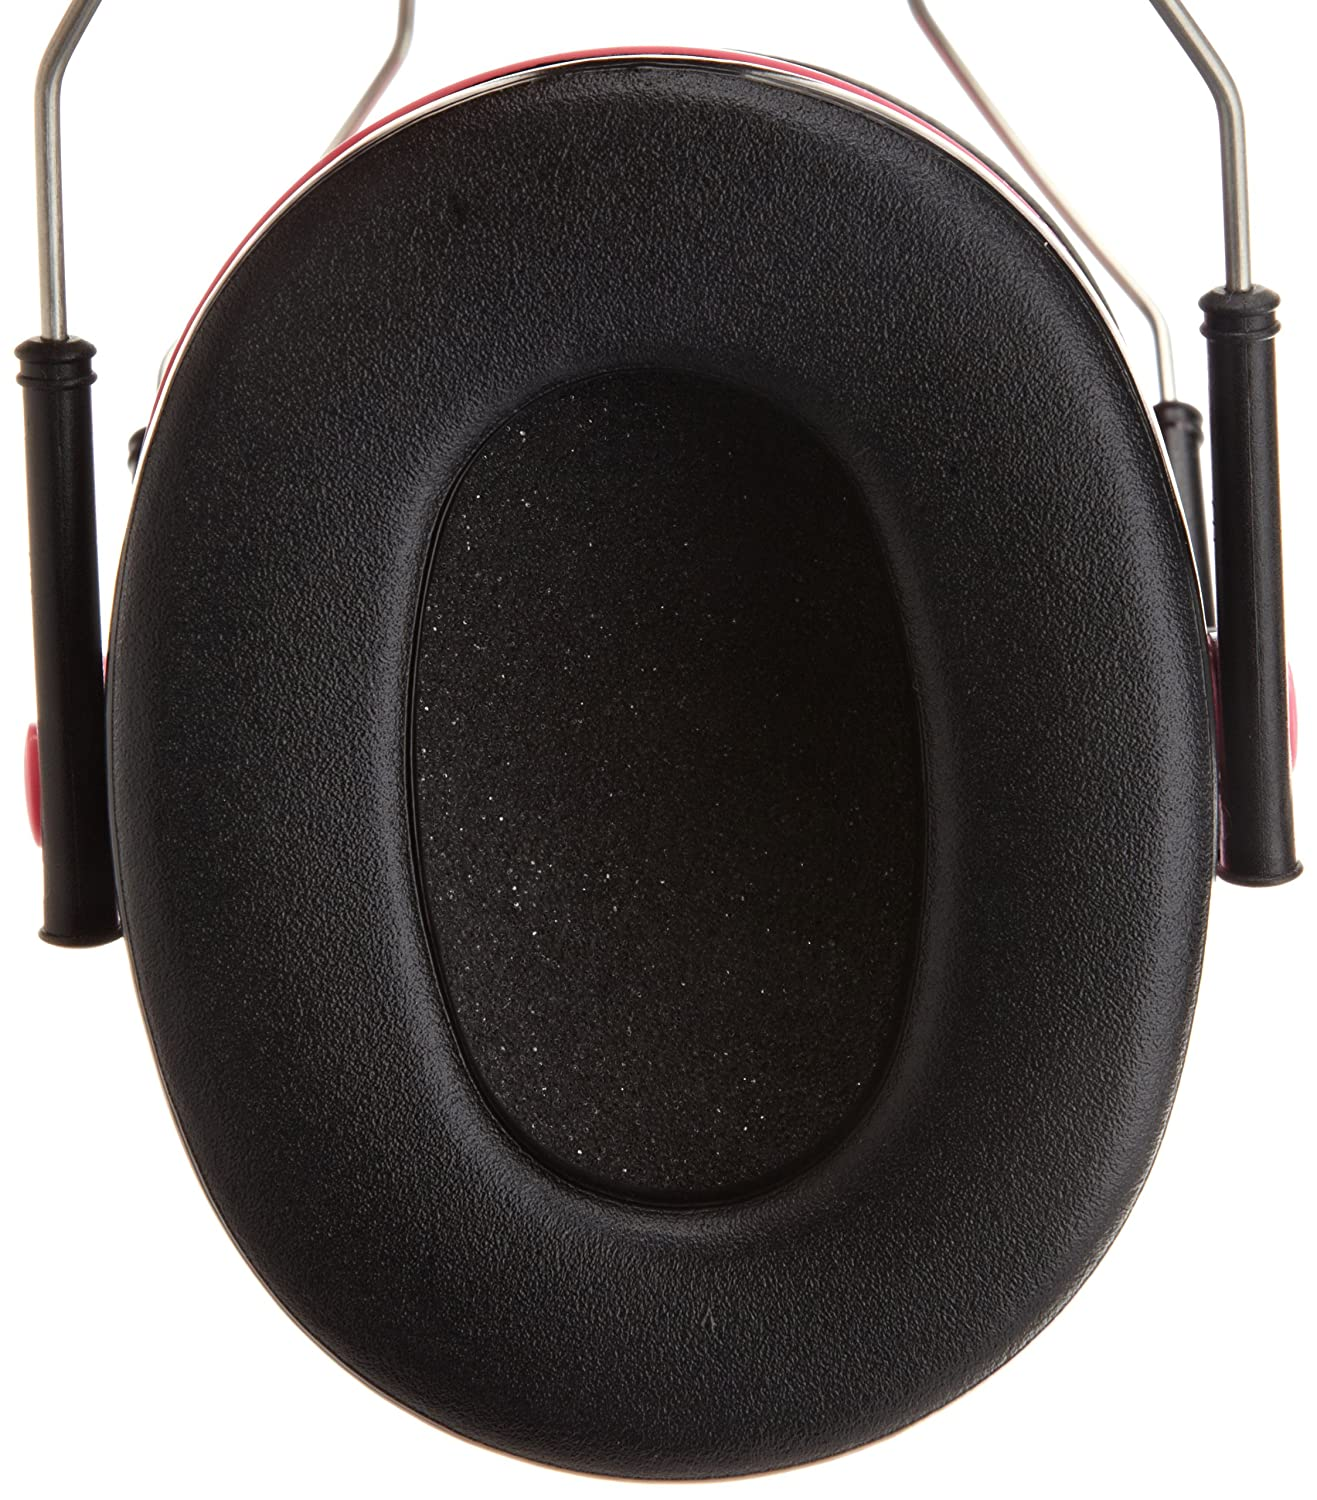 Peltor Sport Earmuffs Black Small 1 Pack Home Ears And Speakers Protector Improvement